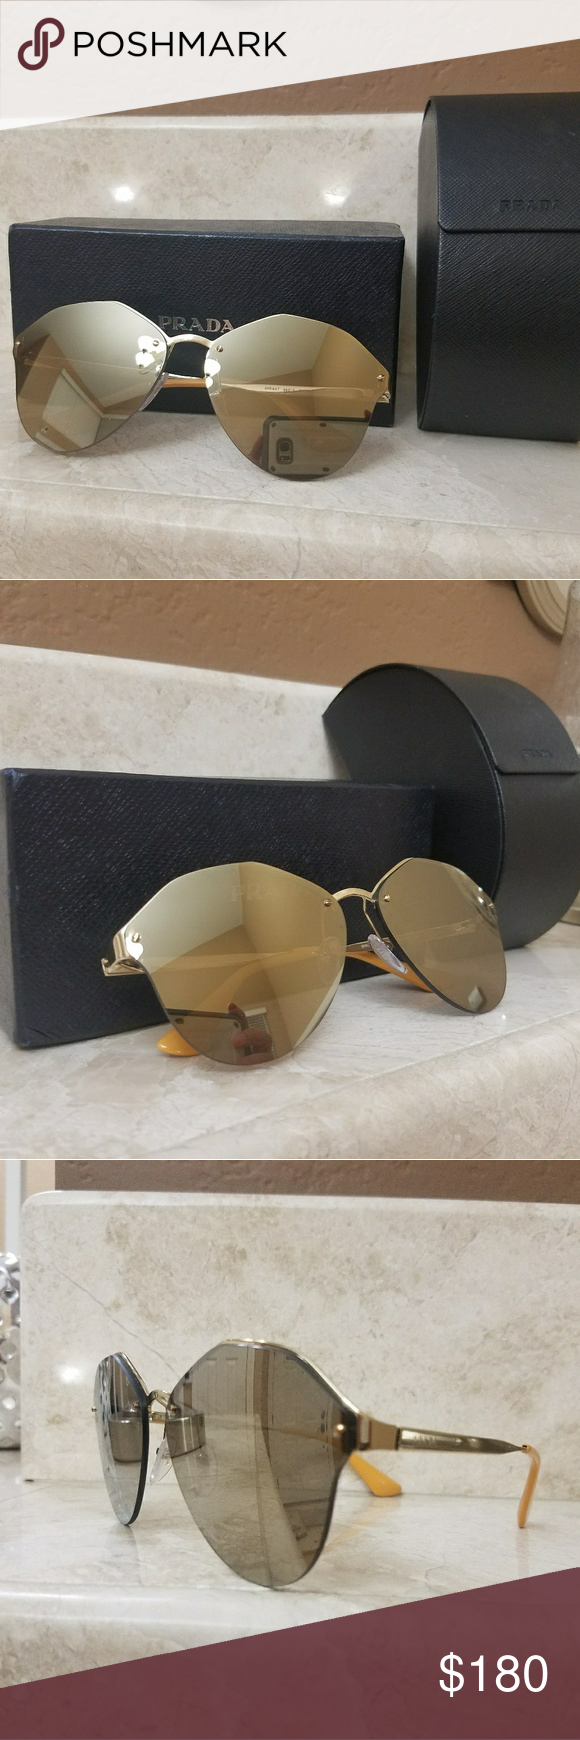 195f049f02a6 Authentic Prada Sunglasses Authentic Prada Sunglasses. Light brown mirror  gold. Serial number reads SPR 64T. New Prada Accessories Sunglasses